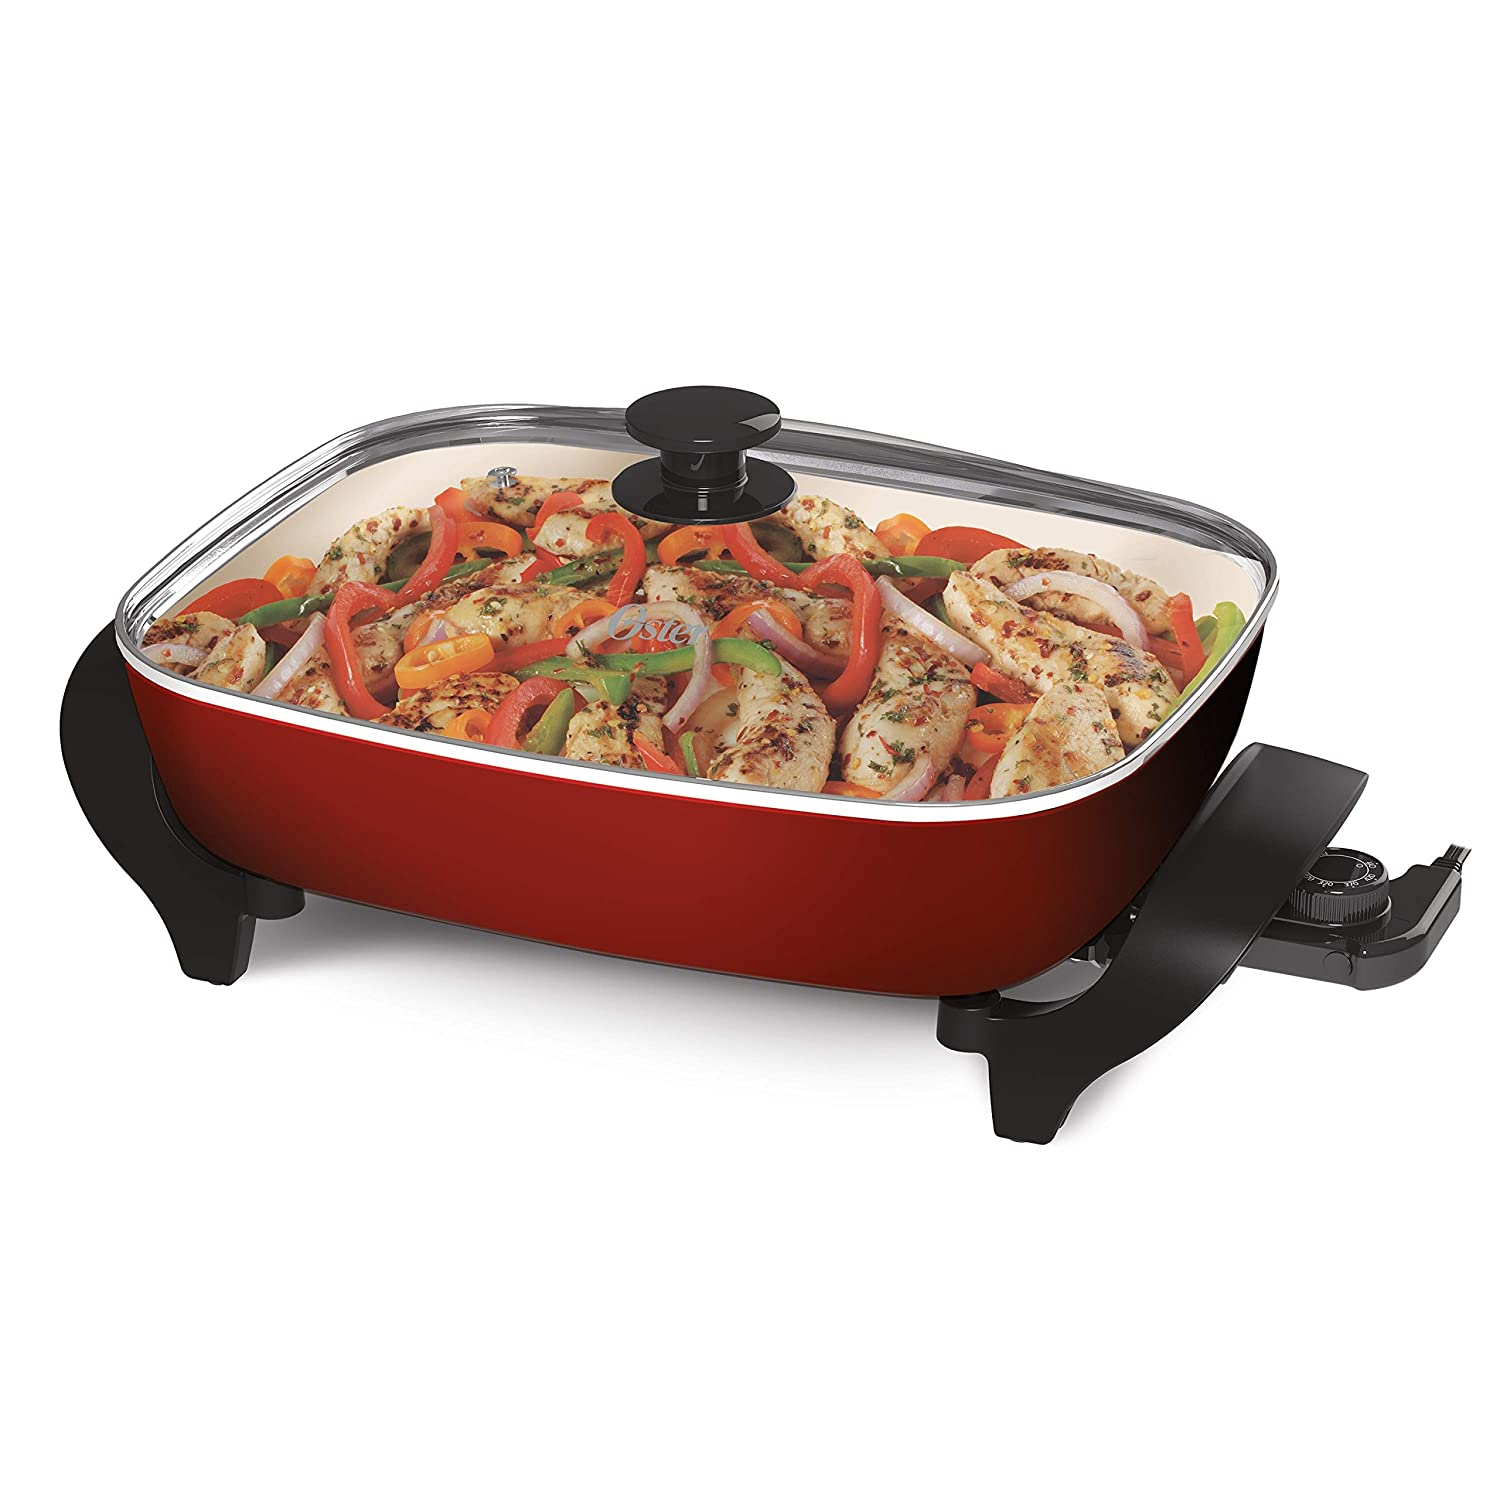 "Oster CKSTSKFM16MR-TECO Titanium Infused DuraCeramic Electric Skillet 12"" x 16"" Red/Eggshell"